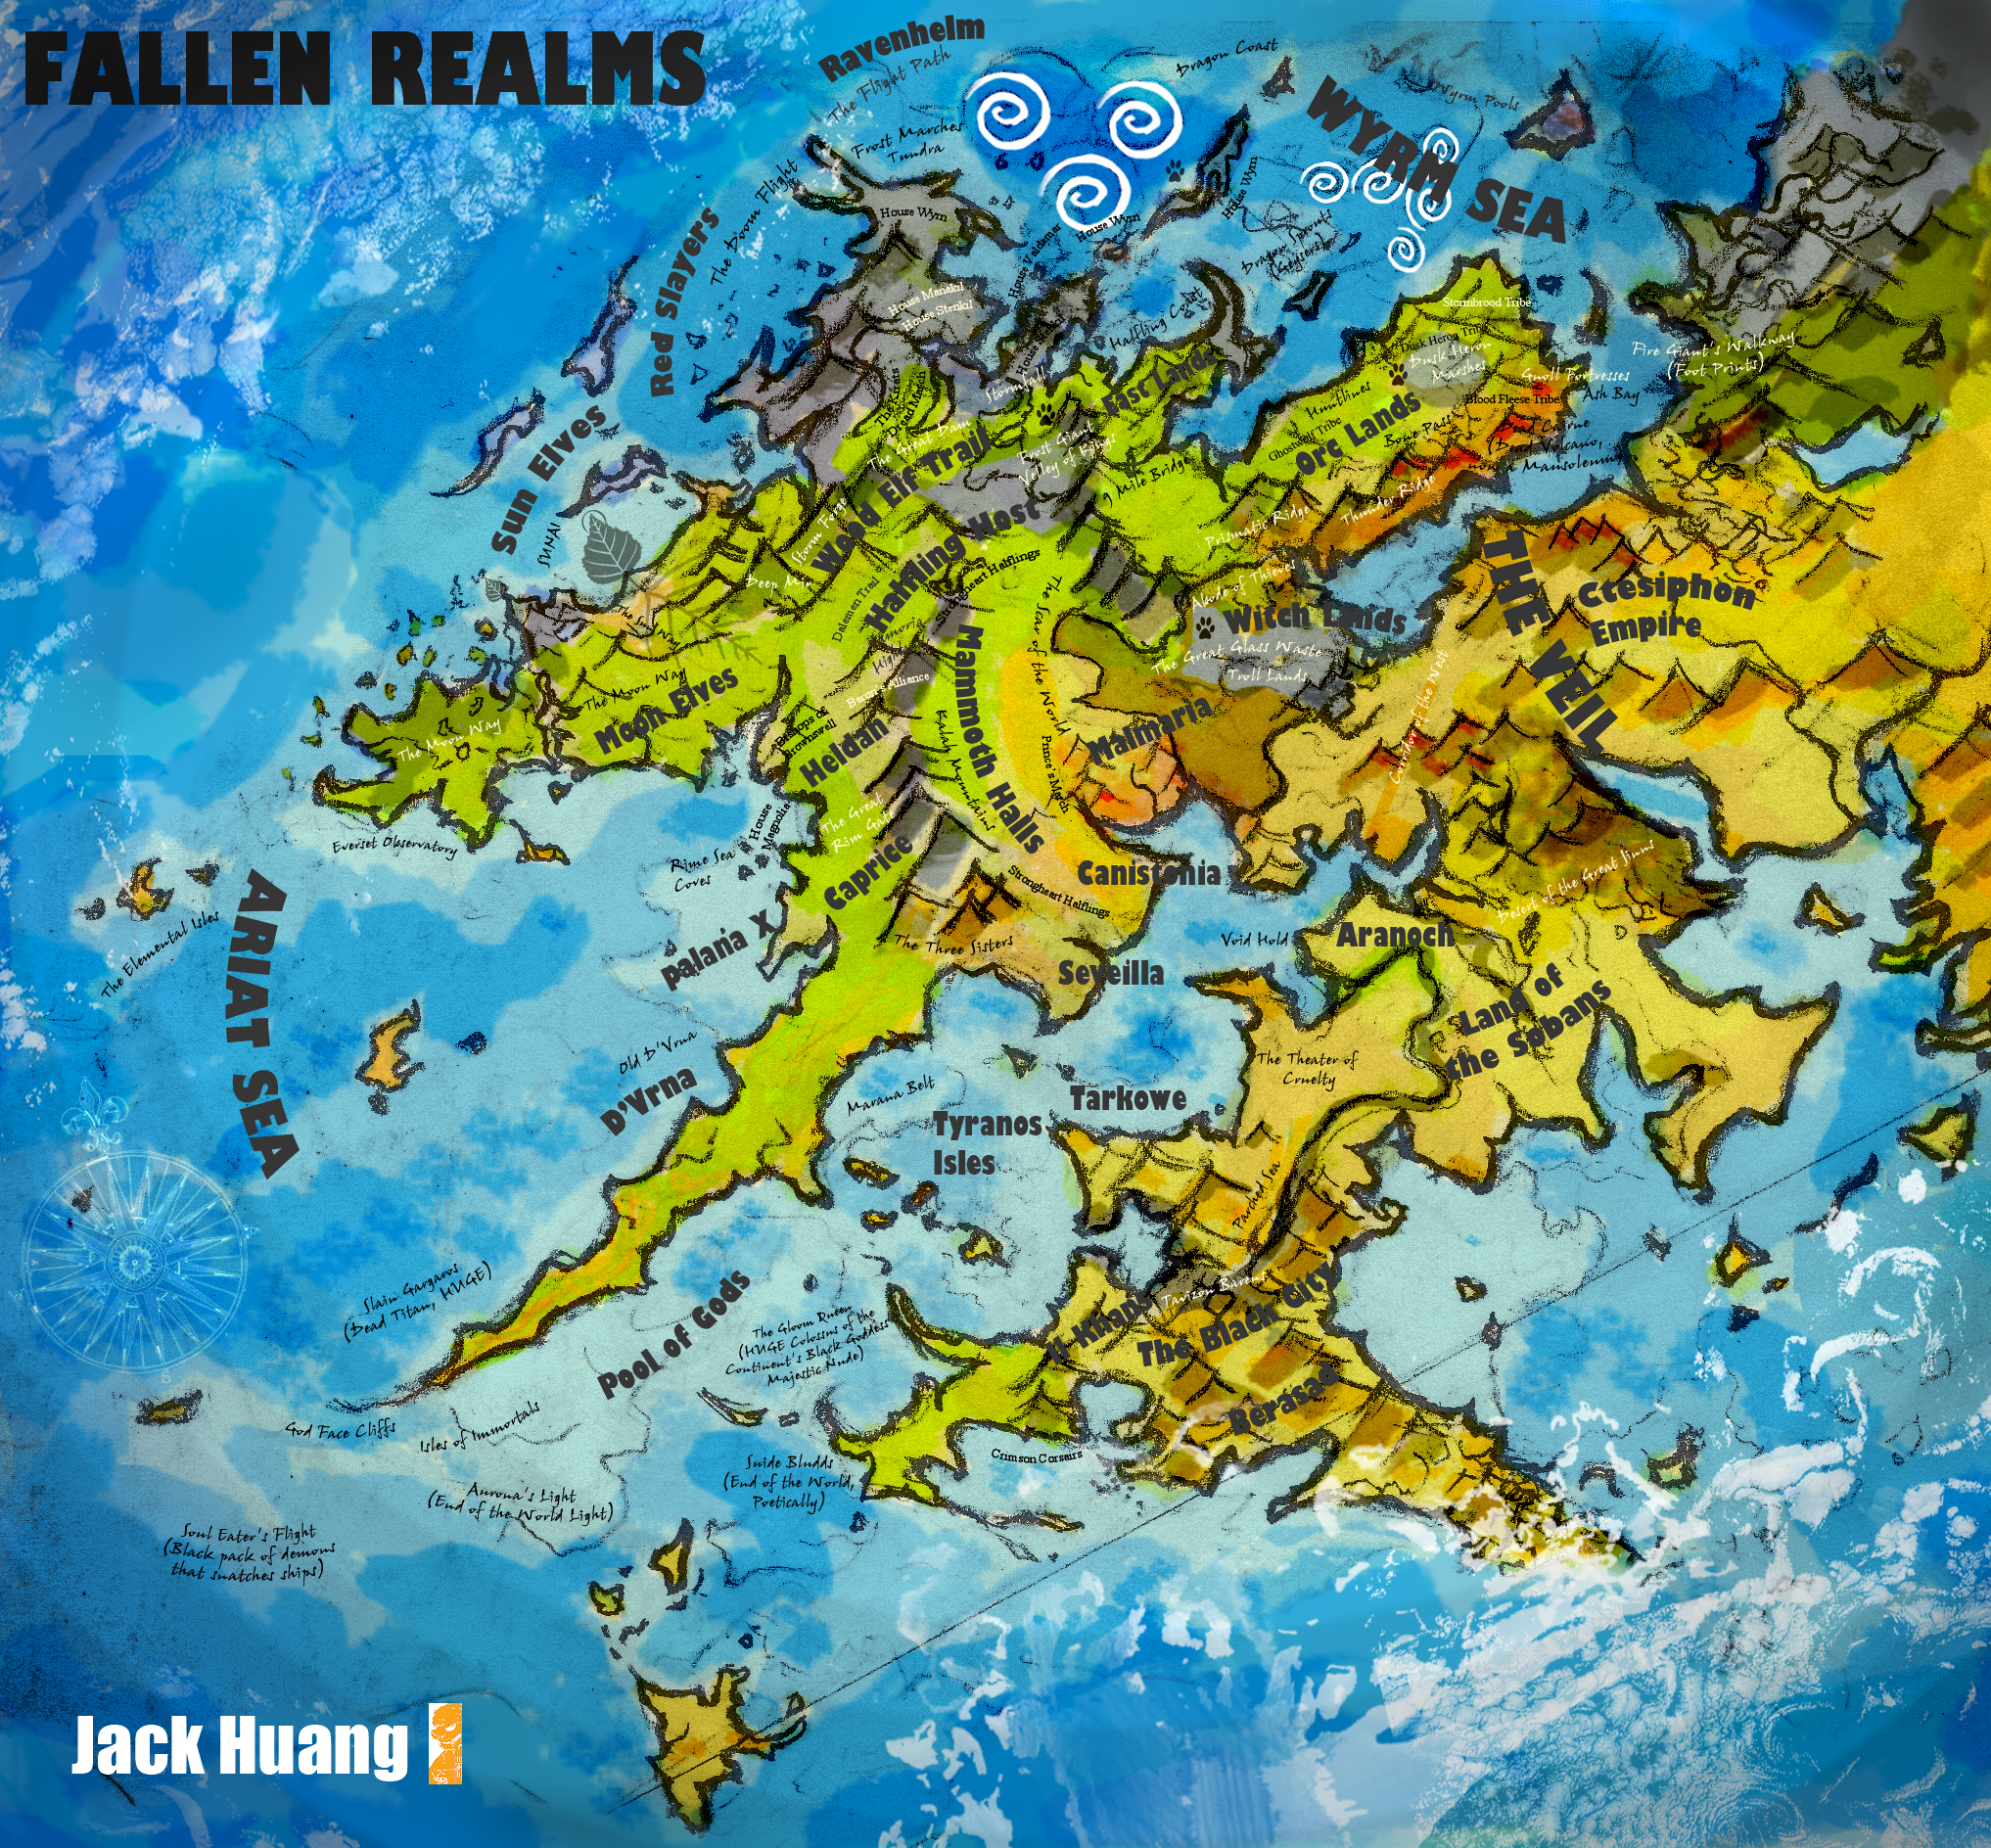 Video game concepts world of lors map by lindseyshemwell on fallen realms world map by dorianclock gumiabroncs Images